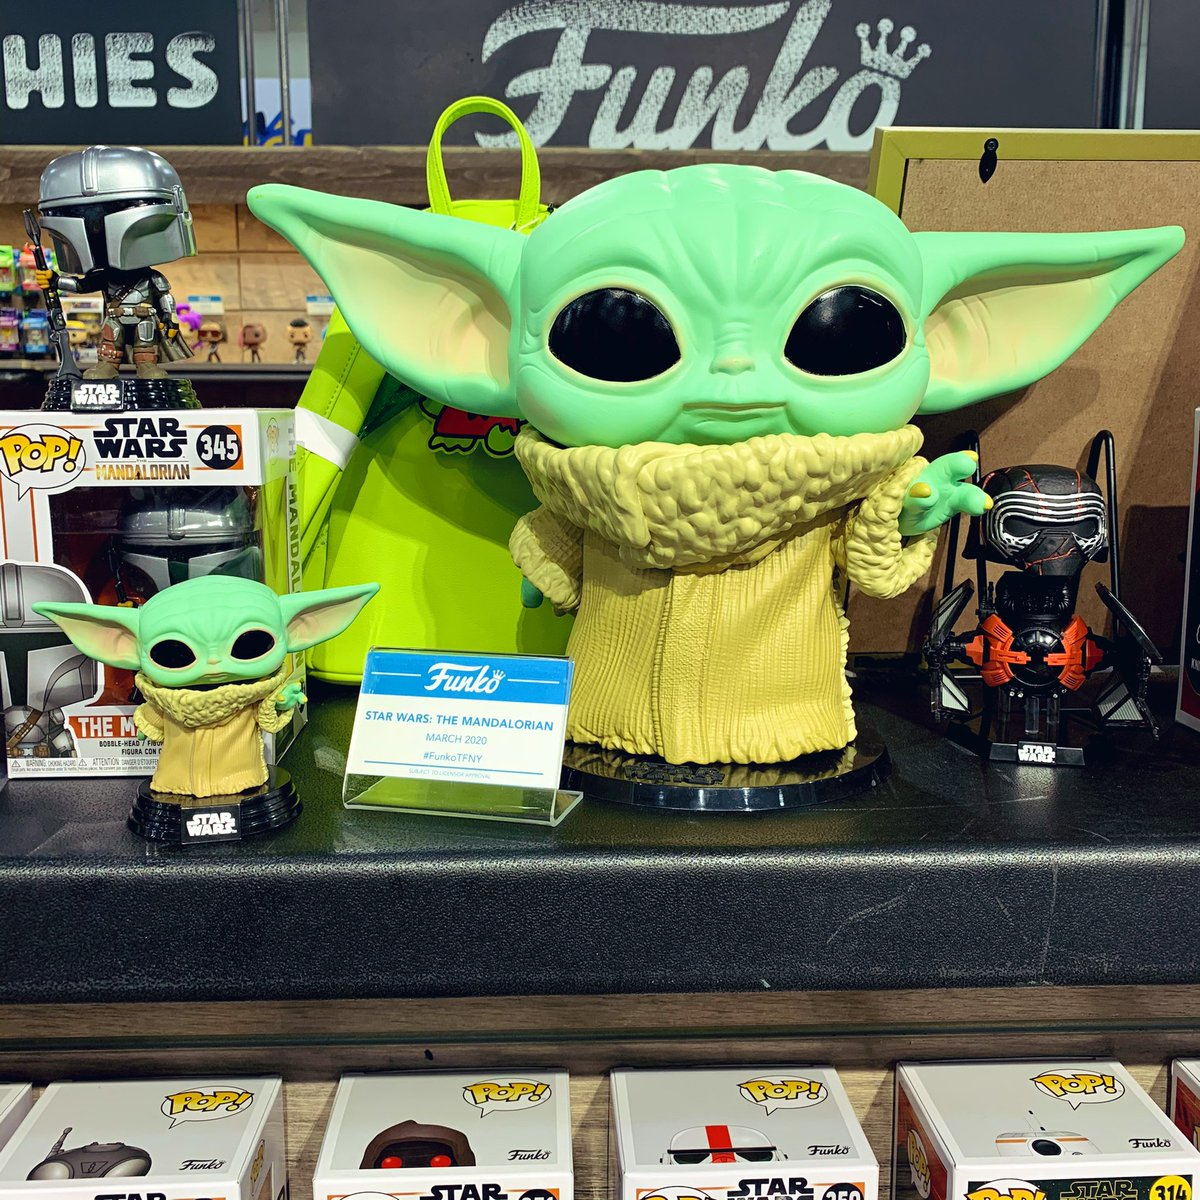 The Child Pop! and 10-inch Pop! are at Toy Fair New York! #FunkoTFNY